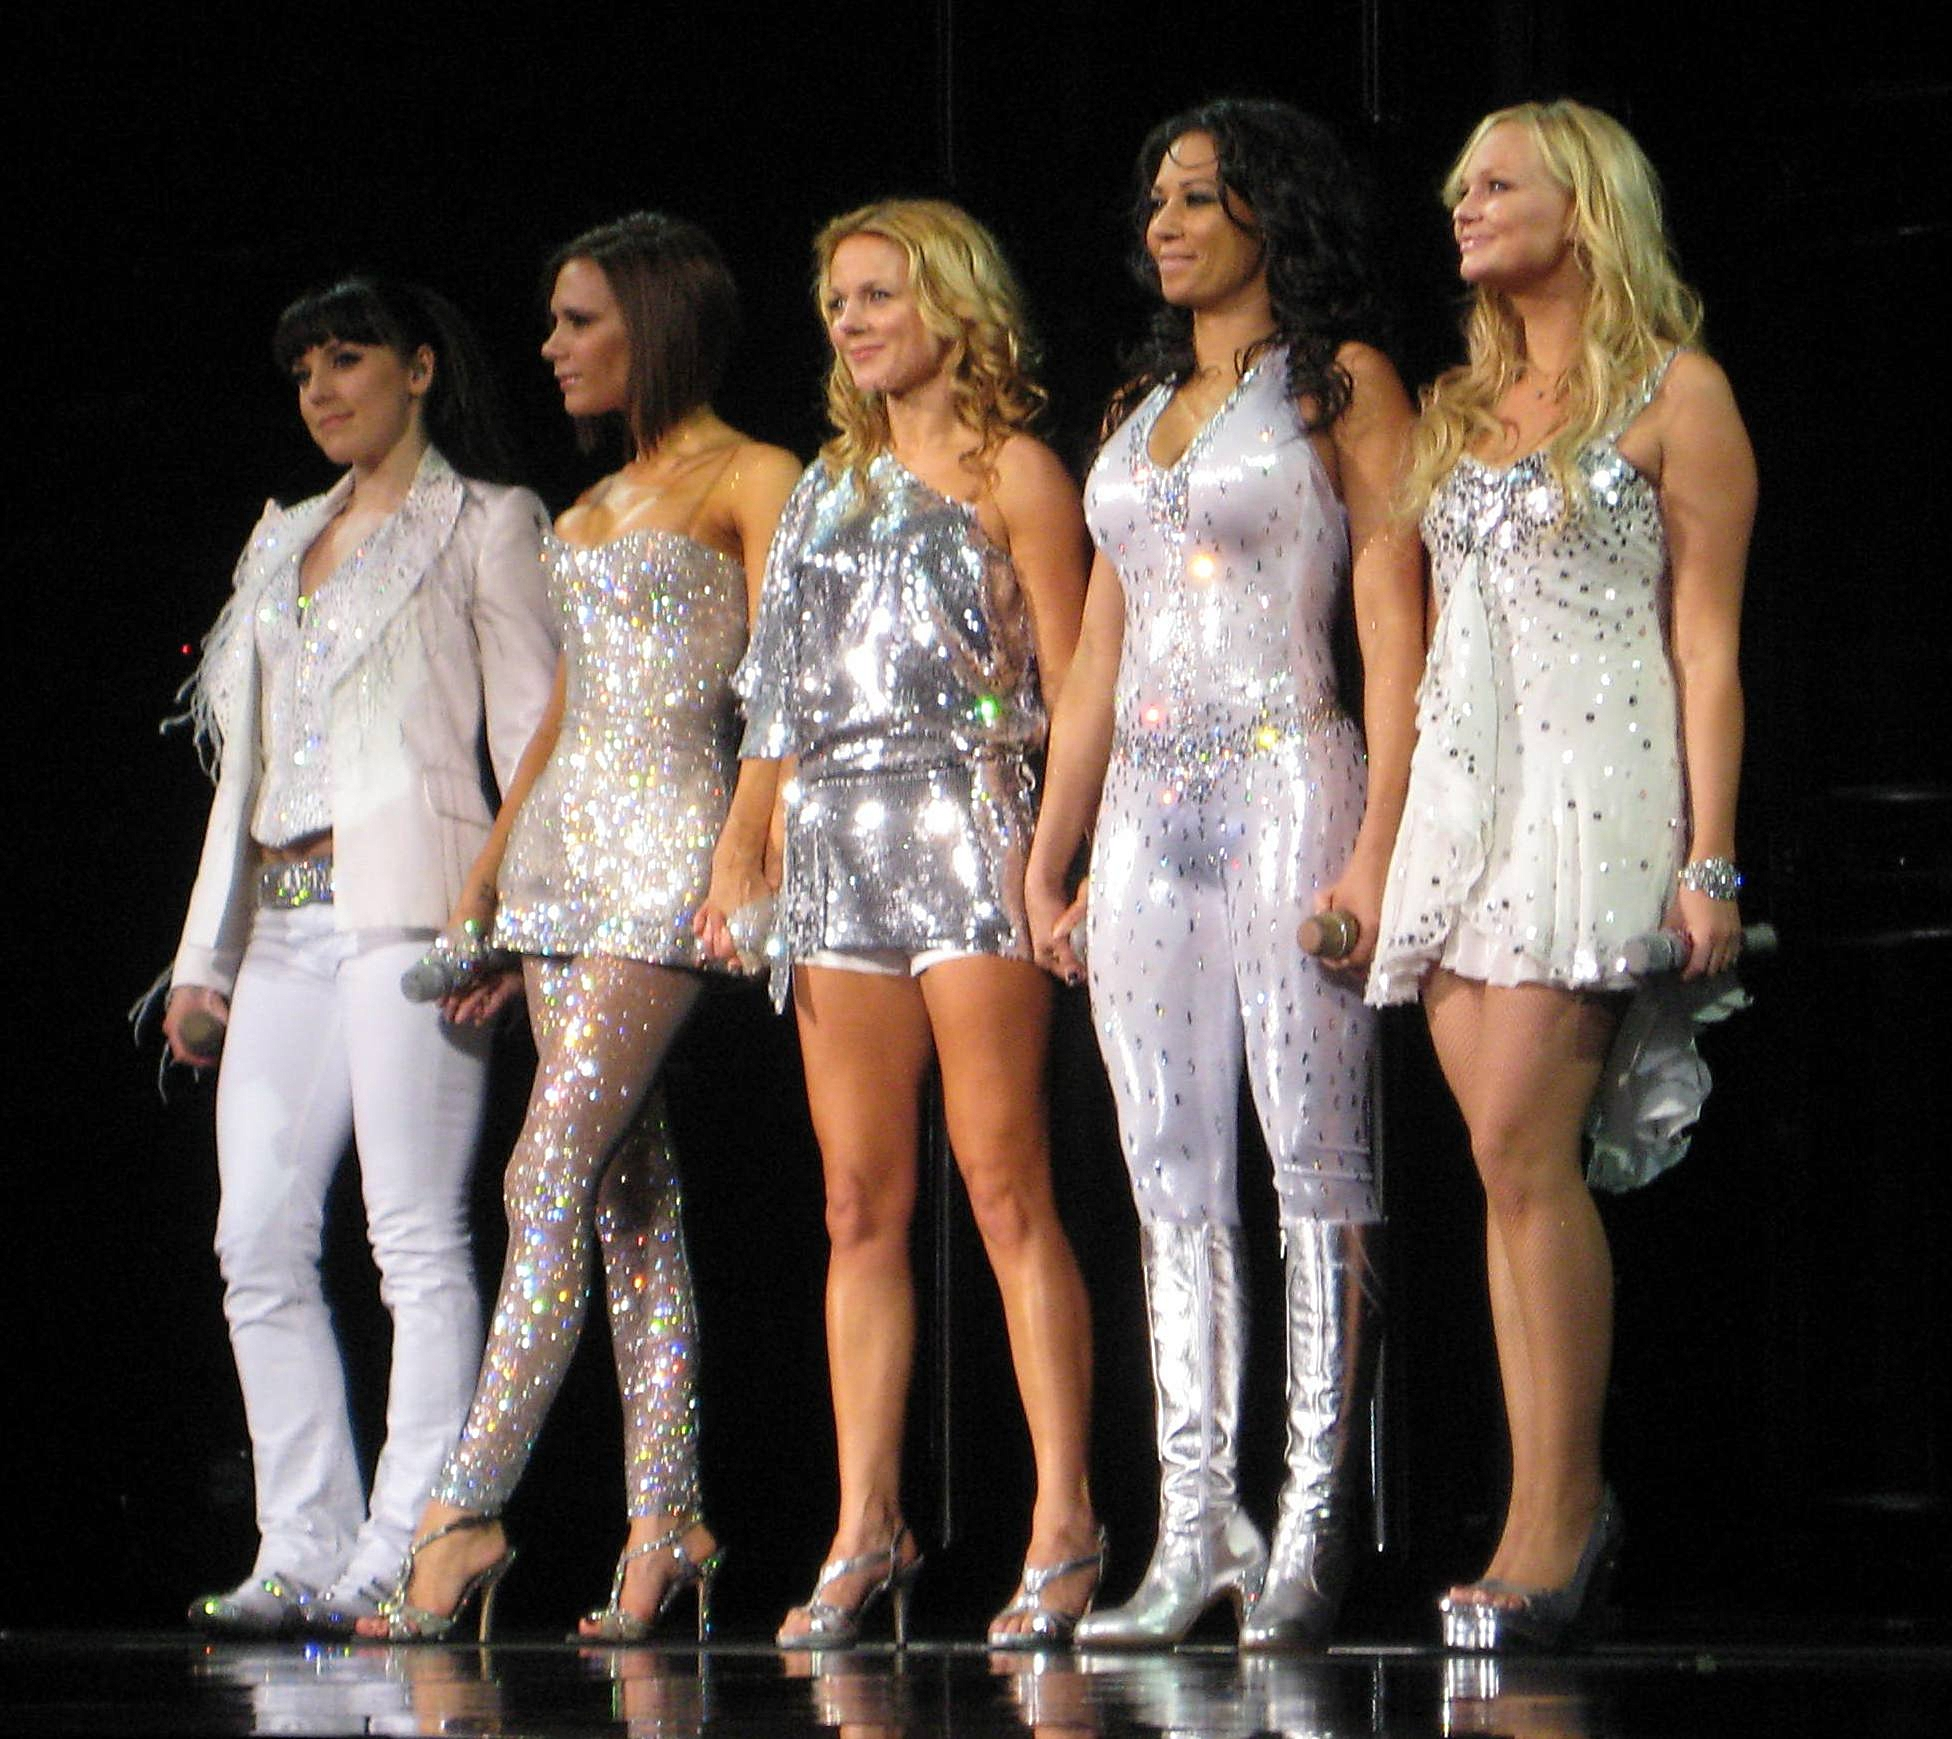 Spice Girls in Toronto, Ontario.jpg